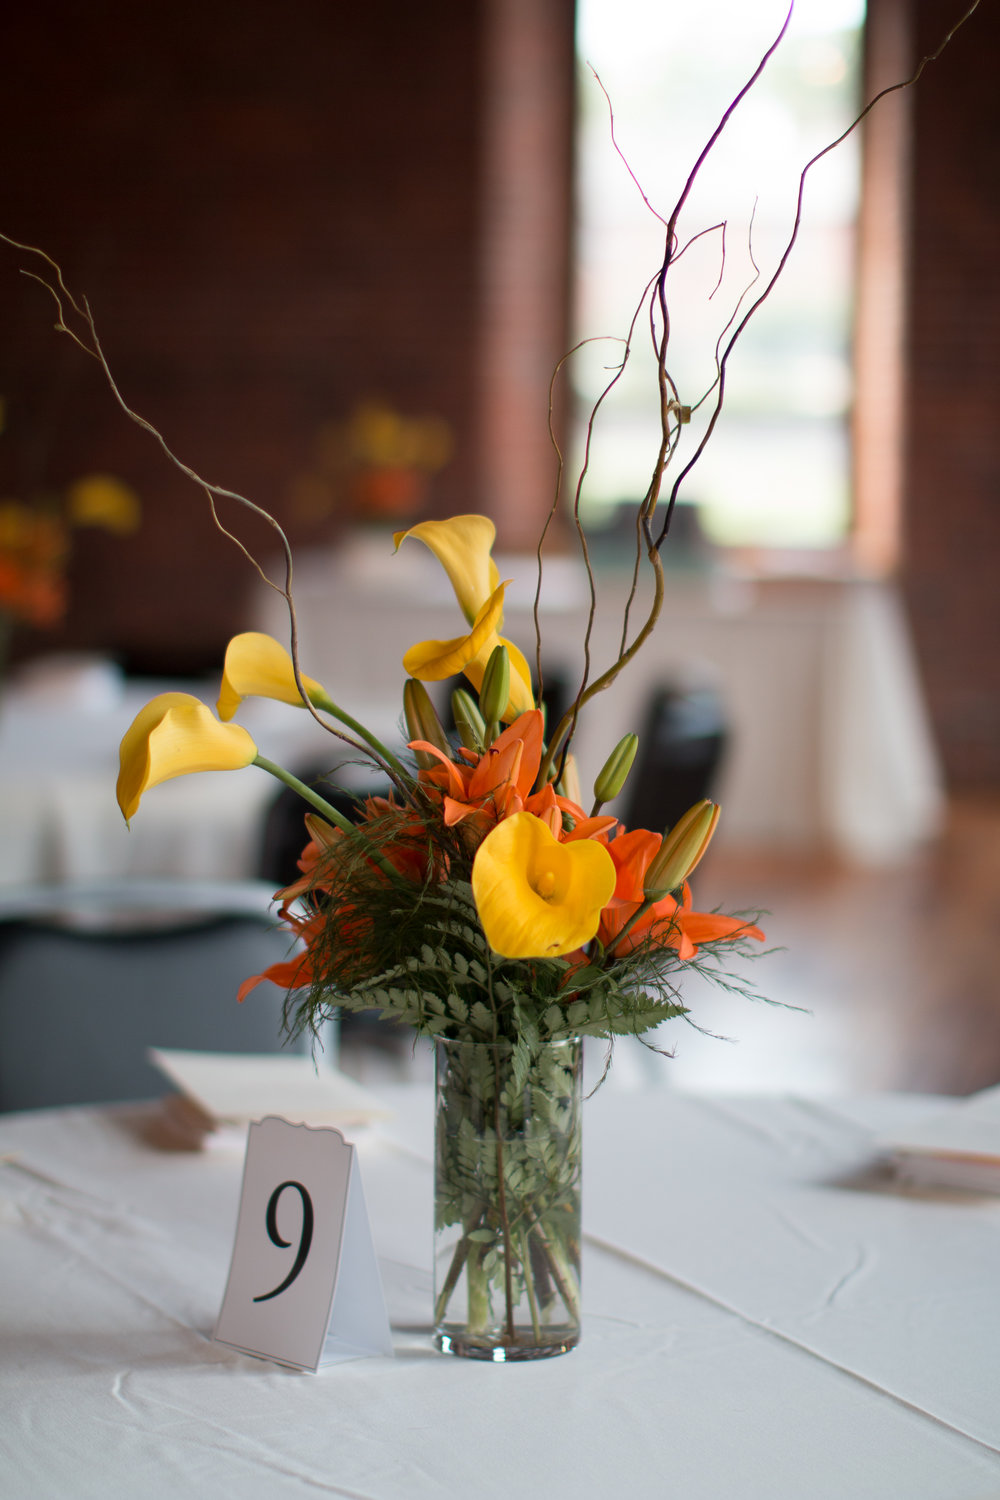 Copy of Wedding Orange and Yellow Centerpieces